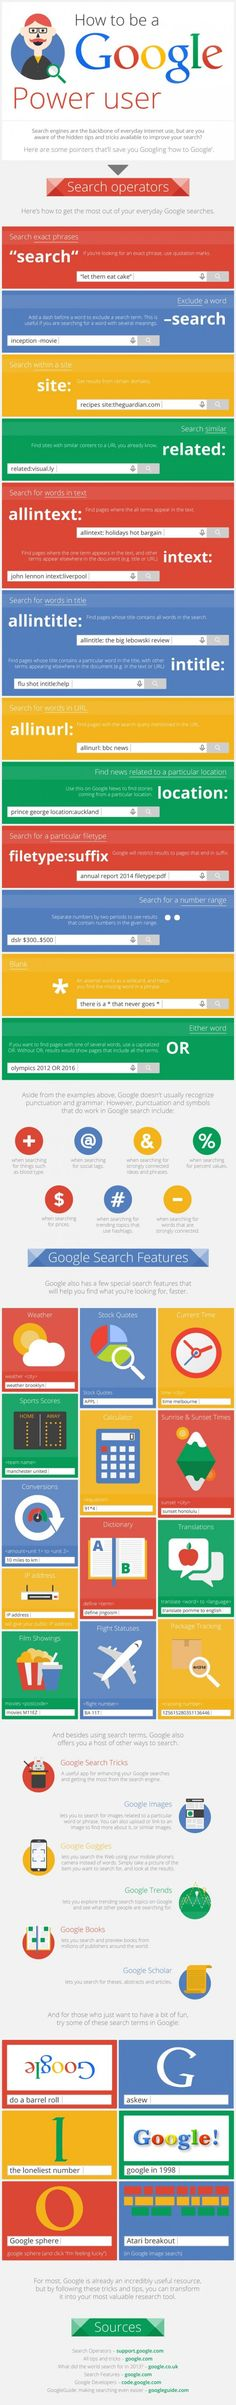 How To Become A Google Power User [Infographic] | Daily Infographic